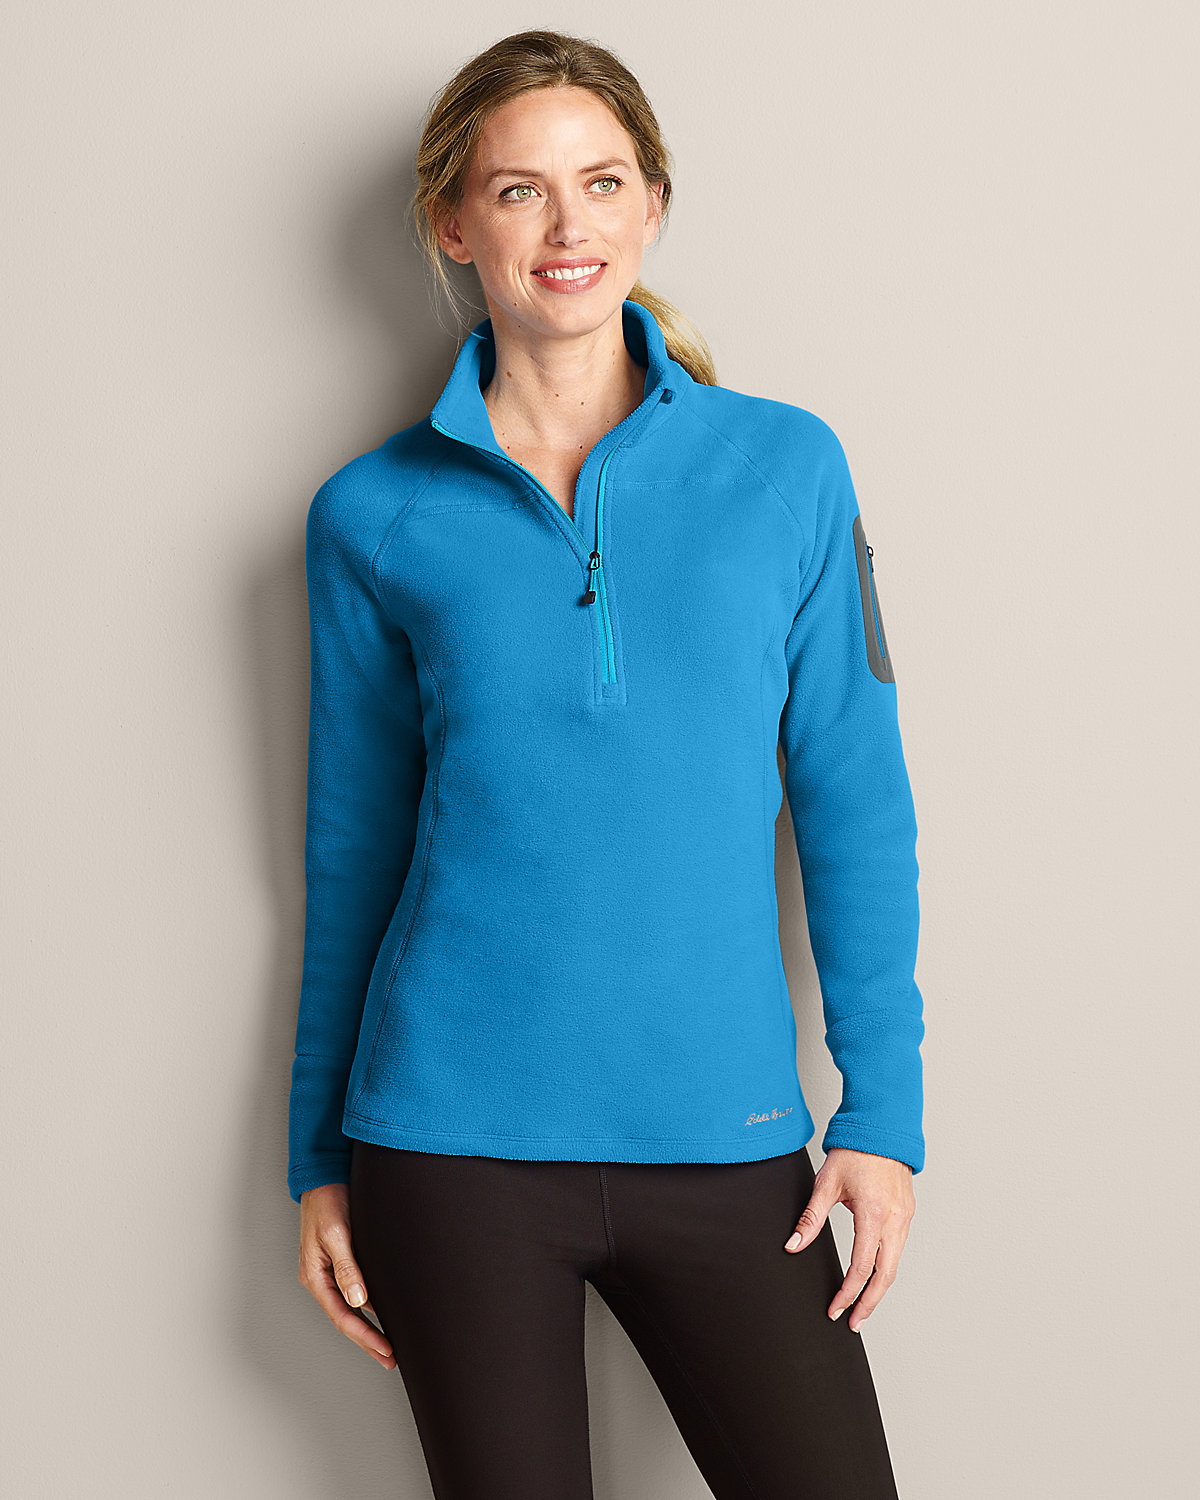 Since , Eddie Bauer has been offering signature outerwear, clothing, shoes, and world-class gear for men, women and kids. Find huge savings on quality indoor and outdoor apparel for life's daily adventures with Eddie Bauer coupons and sales.